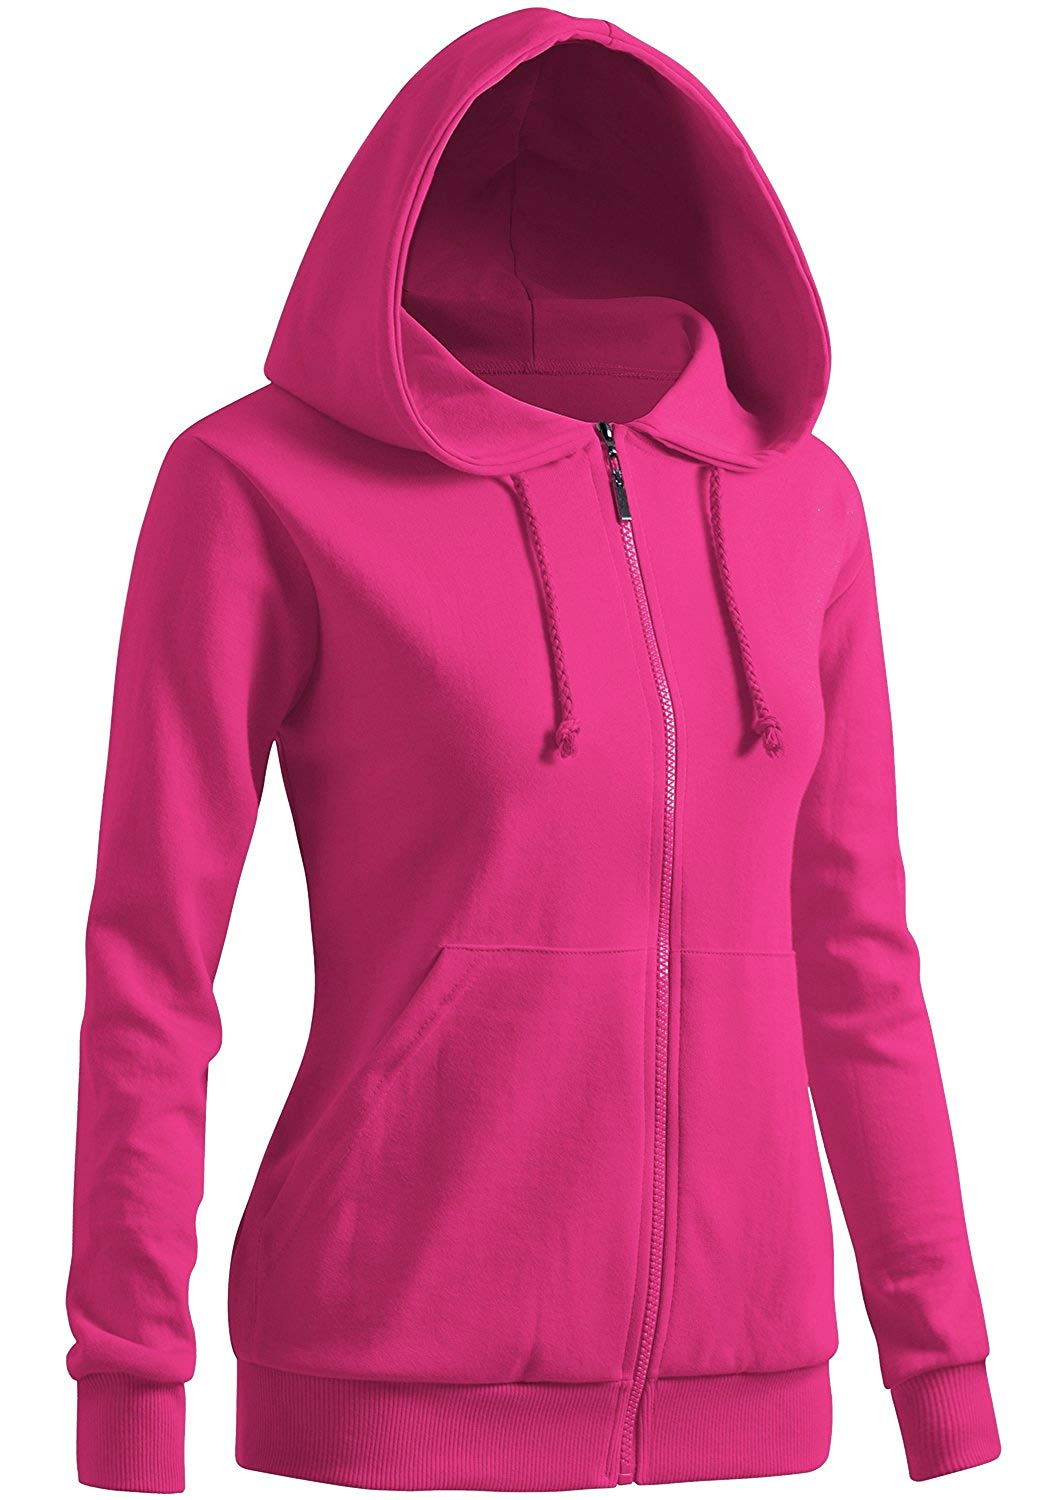 71f663cd289b Get Quotations · CLOVERY Women s Casual Zip-up Hoodie Basic Long Sleeve  Hoodie